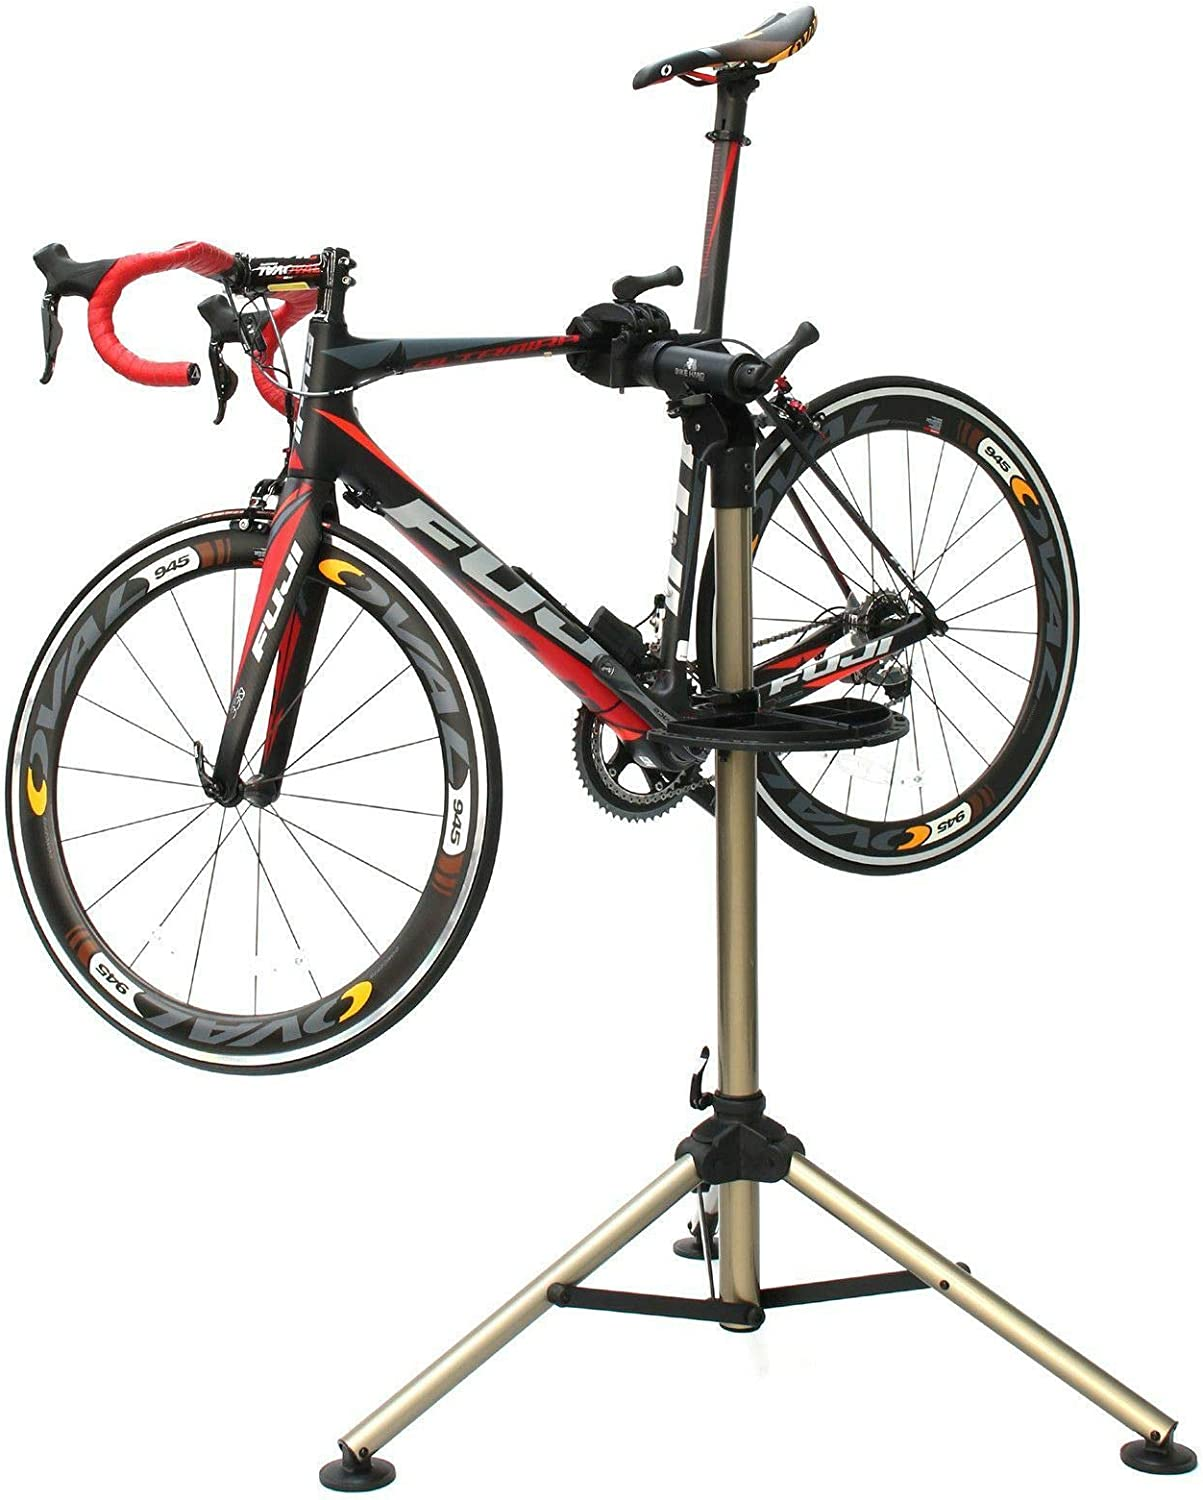 Bikehand Tripod Bike Repair Stand - Home Portable Bicycle Mechanics Workstand